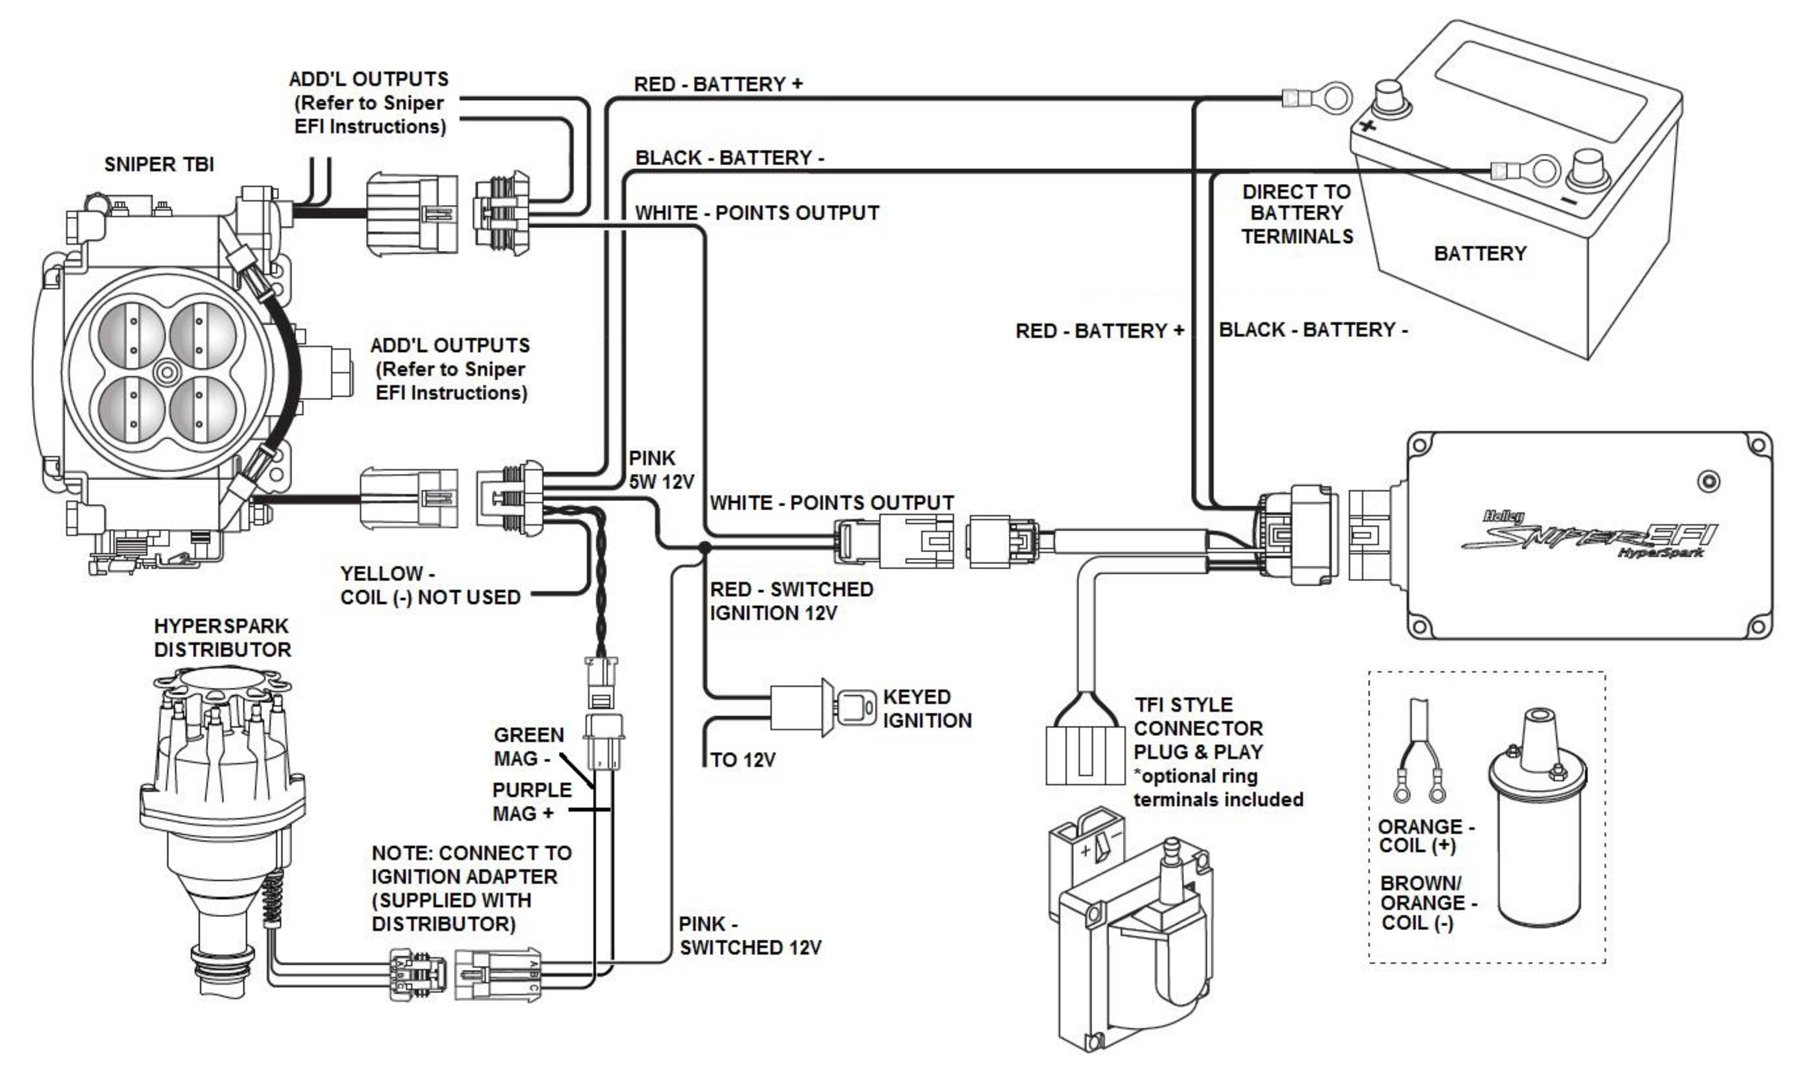 pertronix wiring diagram sbc holley and msd created a plug and play ignition for sniper users  plug and play ignition for sniper